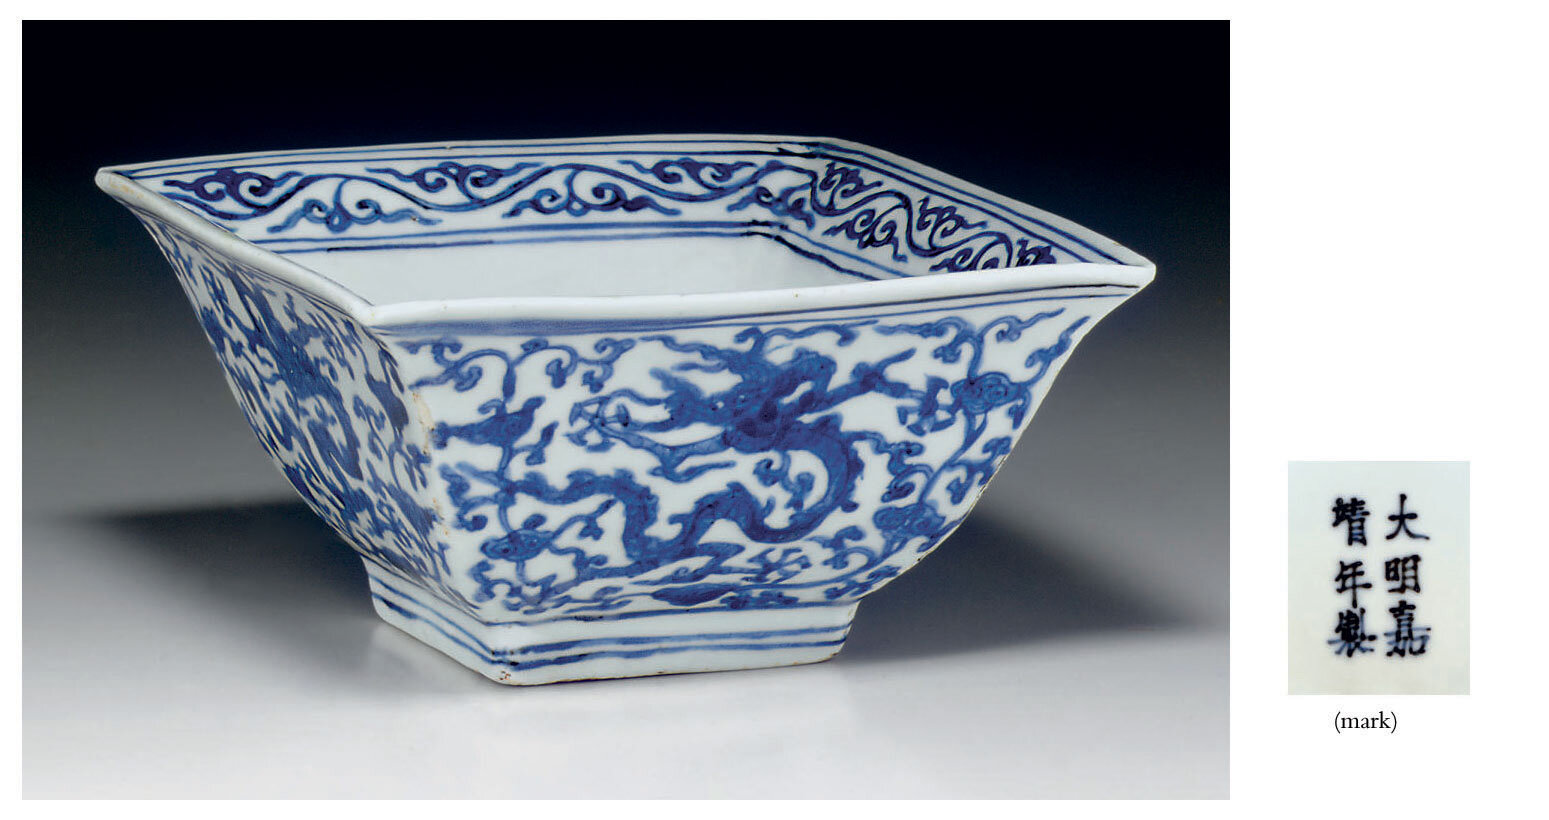 An unusual blue and white square bowl